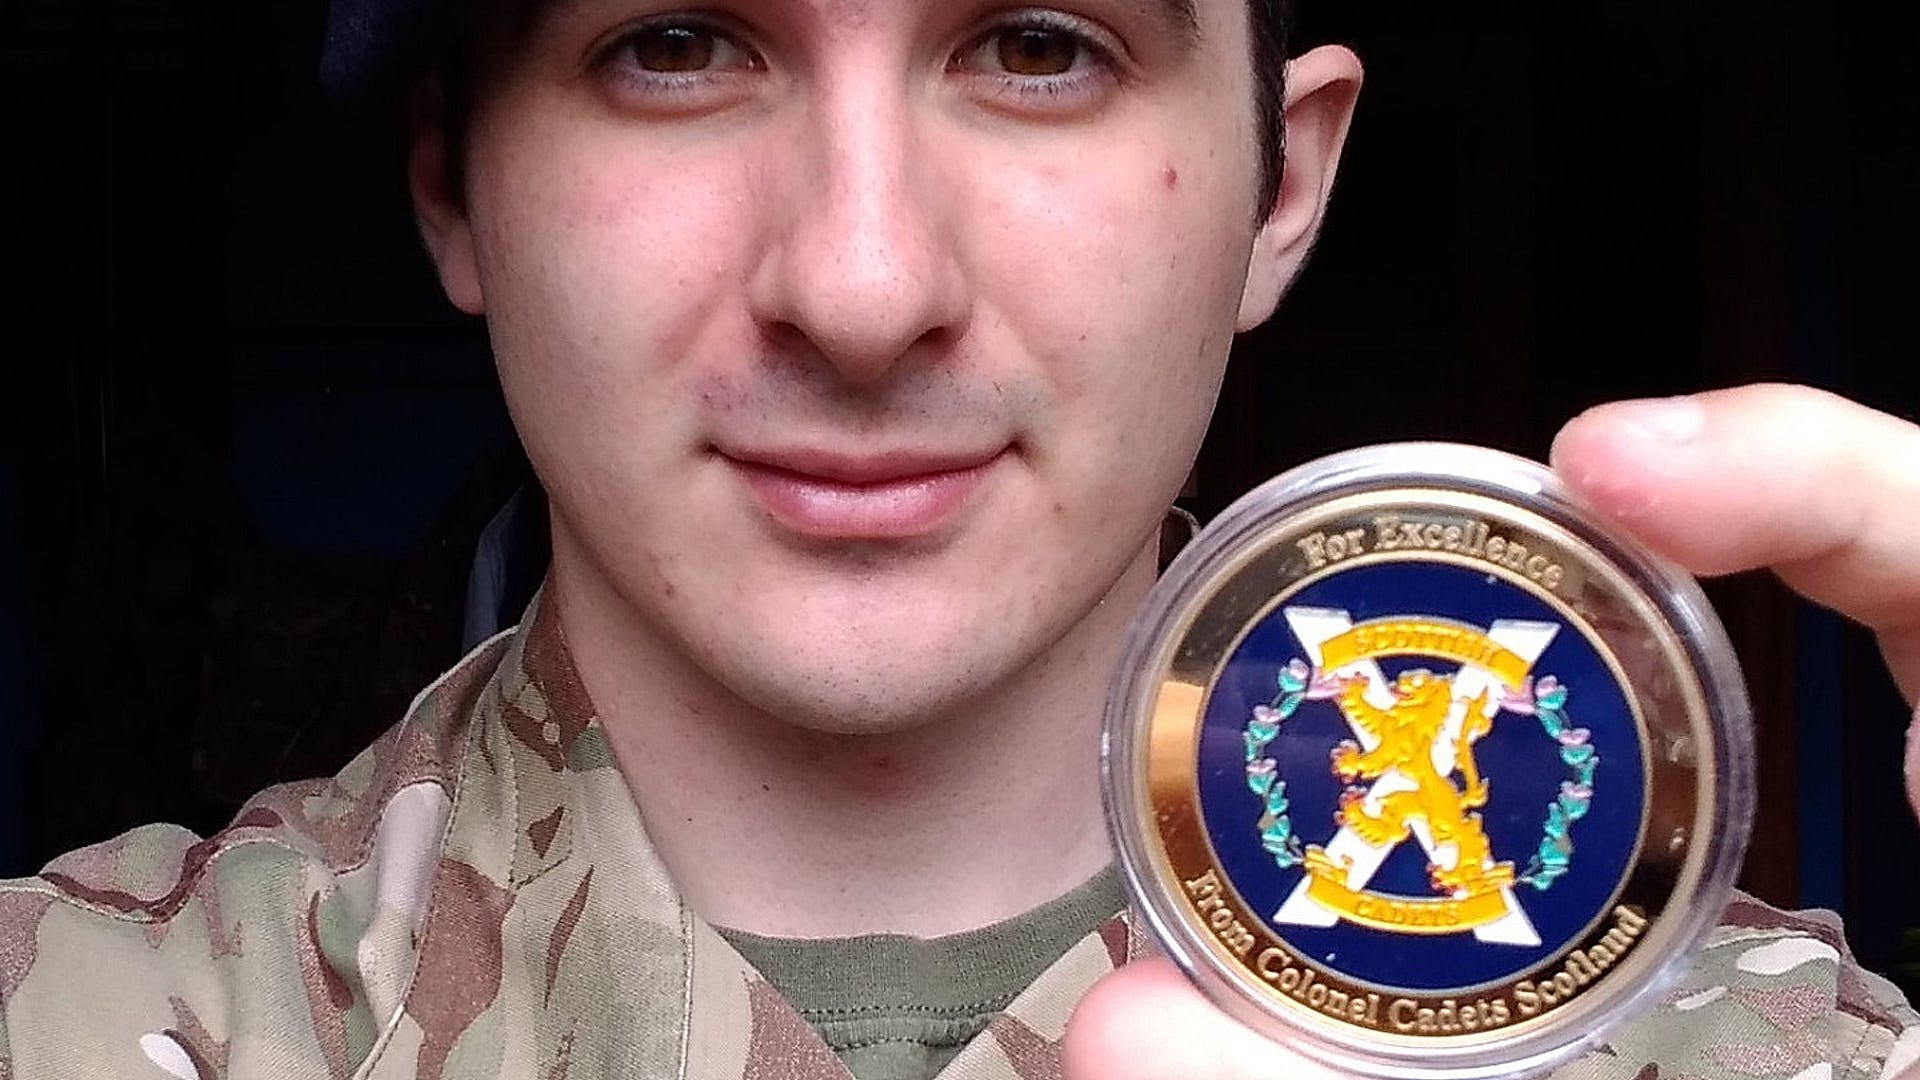 SSgt Rendall with his Col Cadets Coin